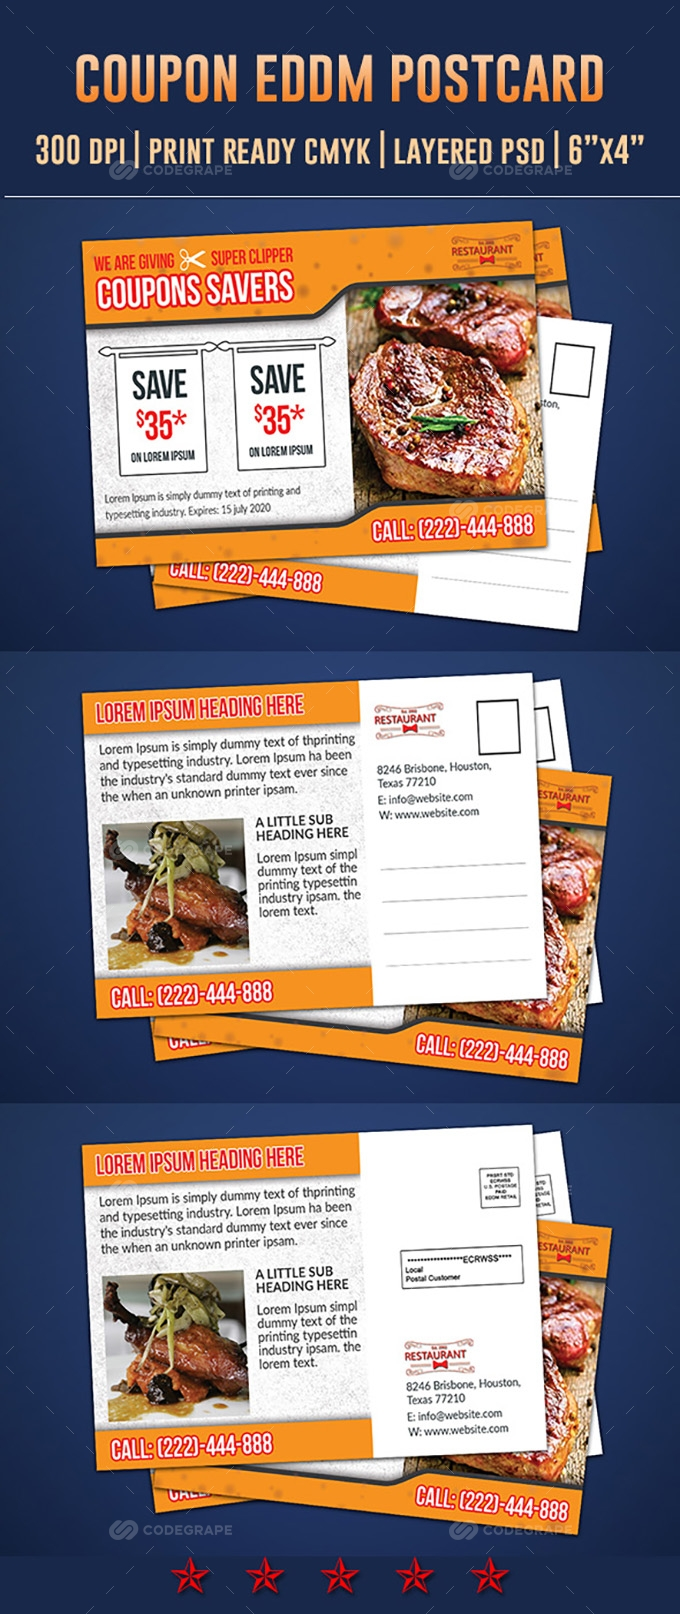 Coupon Postcard & EDDM Design Template